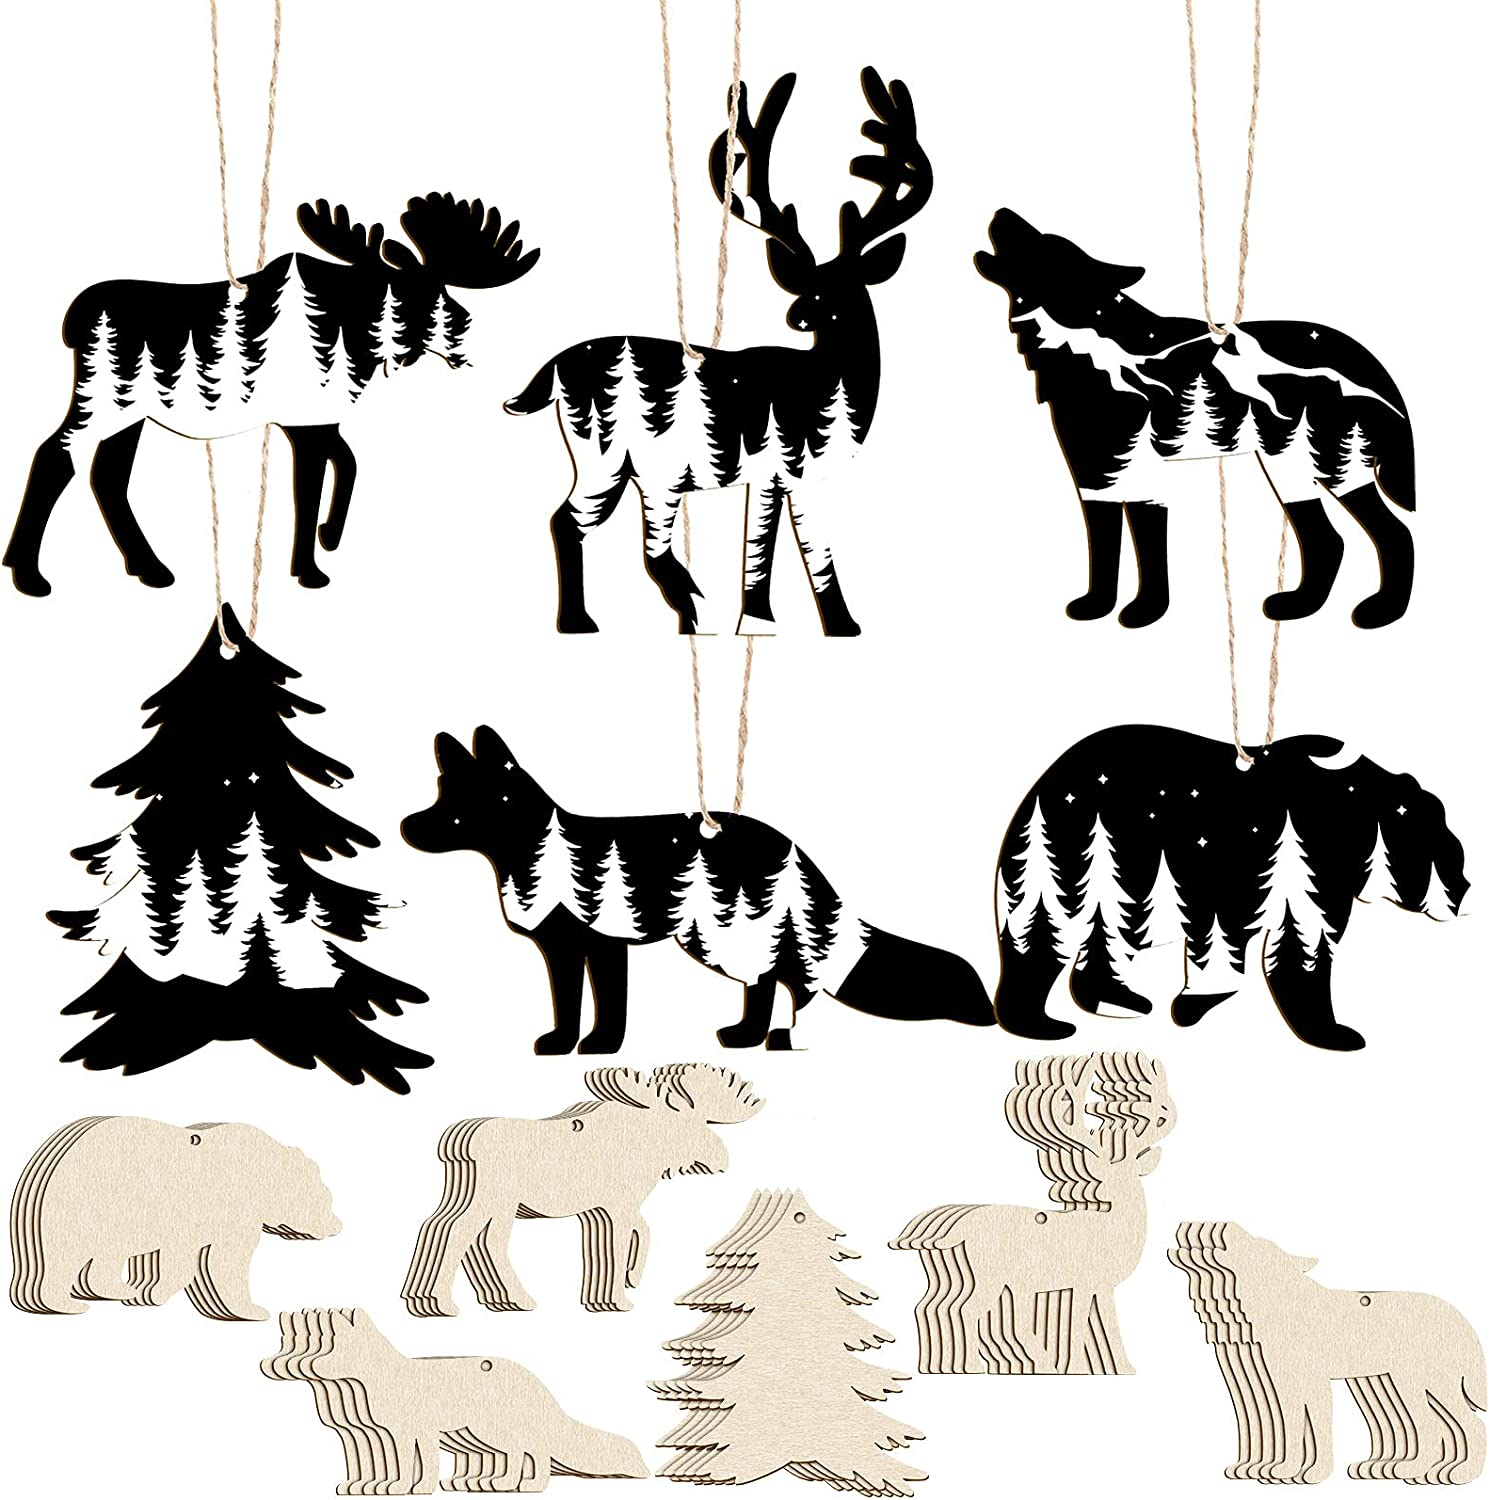 Christmas Wooden Ornaments Wild Forest Animal Ornaments Unfinished Hanging Ornaments Wood Deer Cutouts Animal Party Wall Decor Craft Wood Slices with Rope for DIY Holiday Hanging Decorations (30)